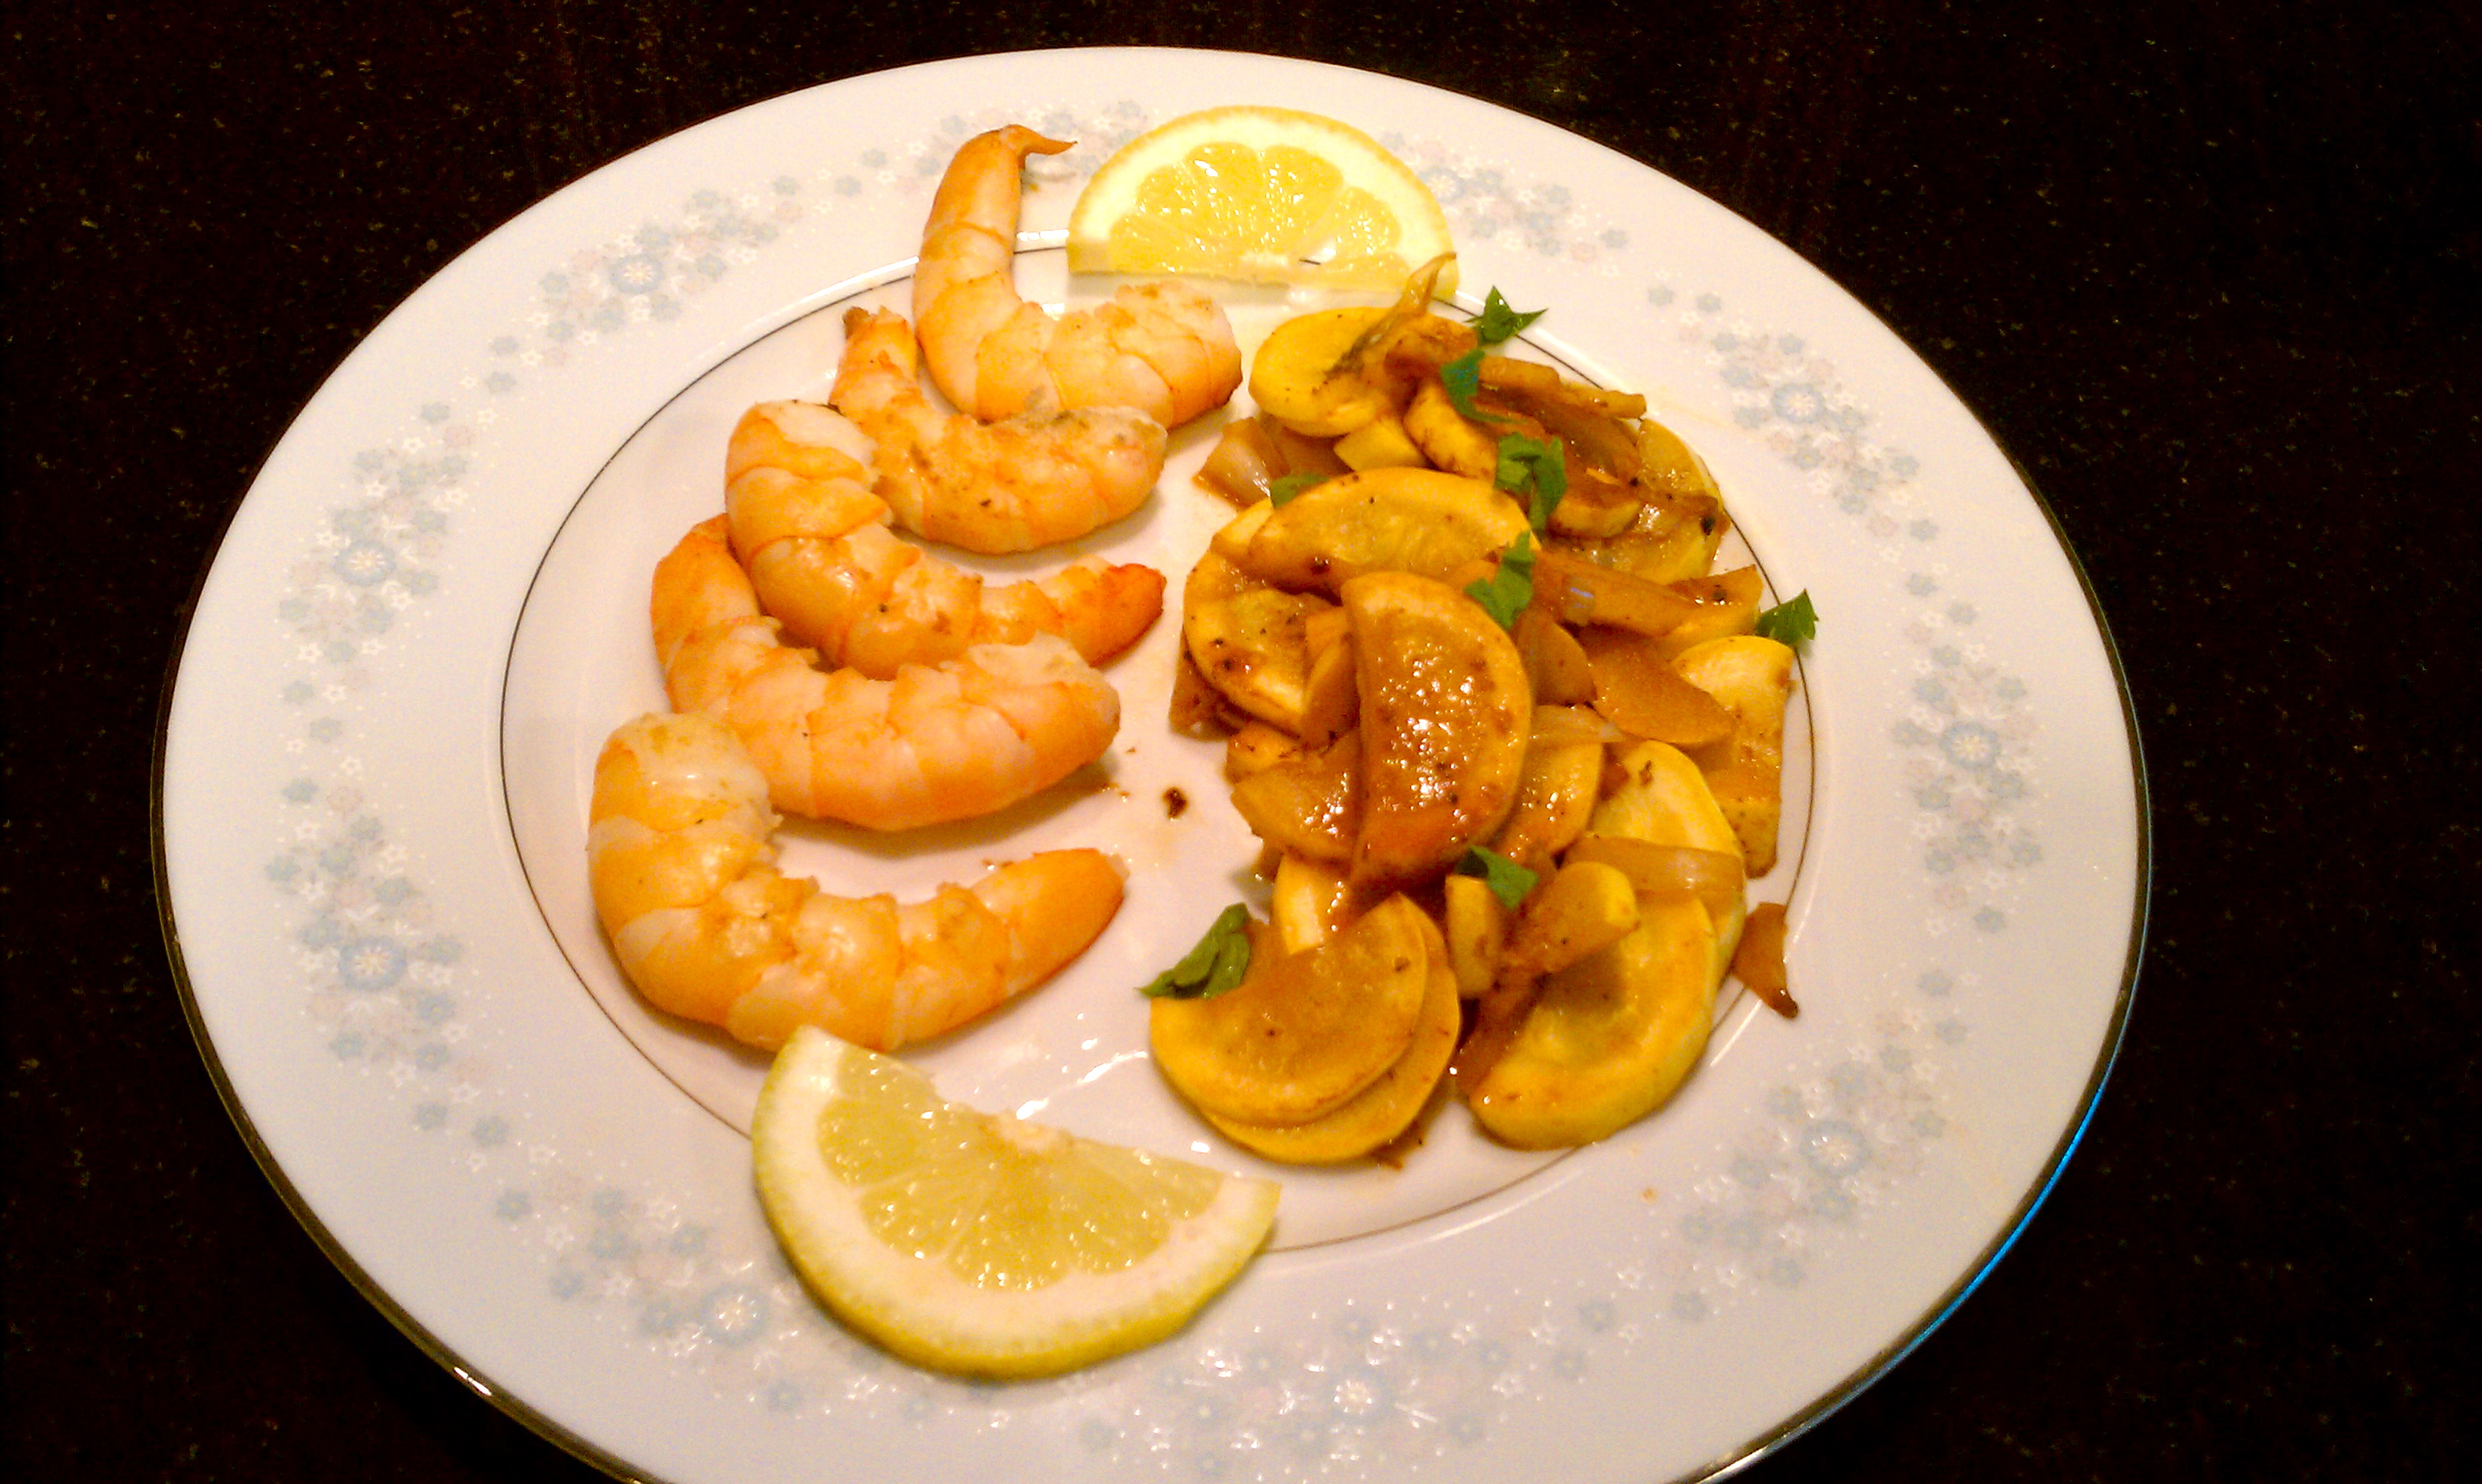 Lemon Yellow Squash with Shrimp